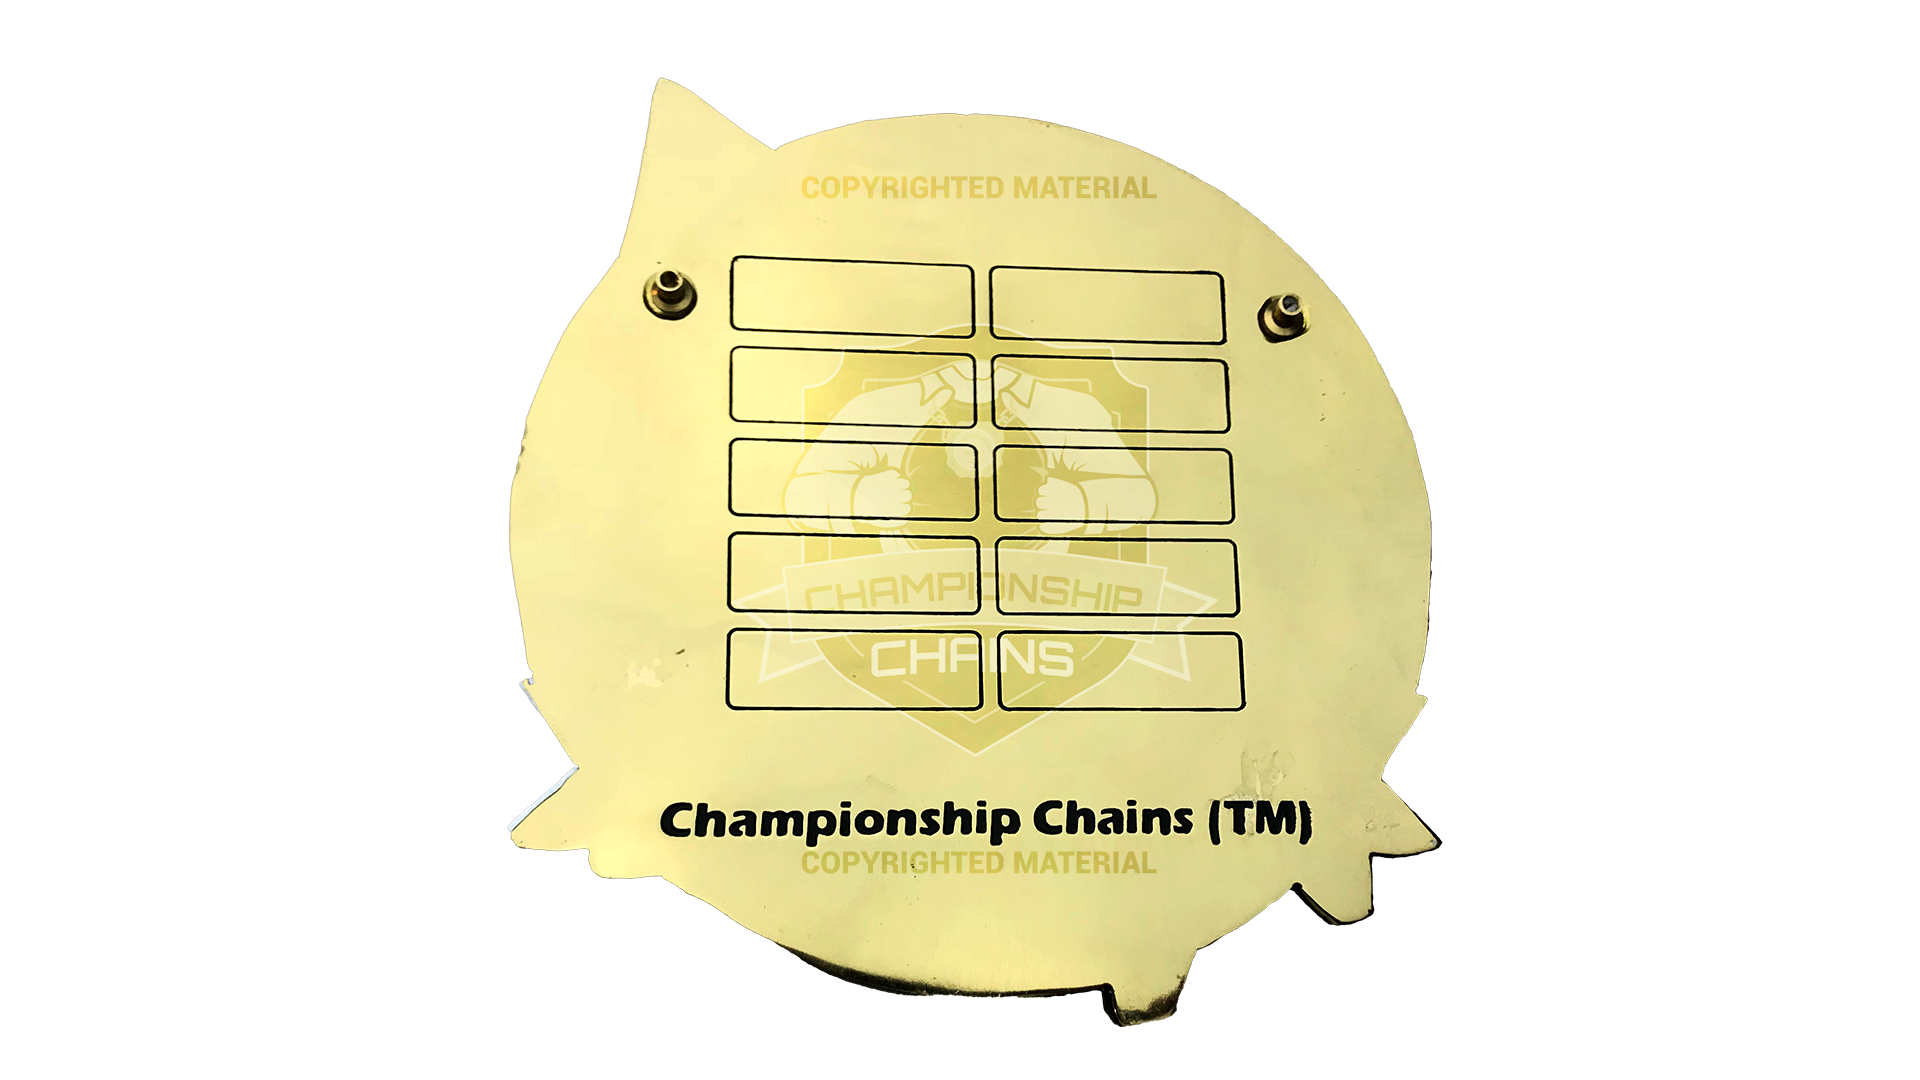 Ballers Only customized championship chain image